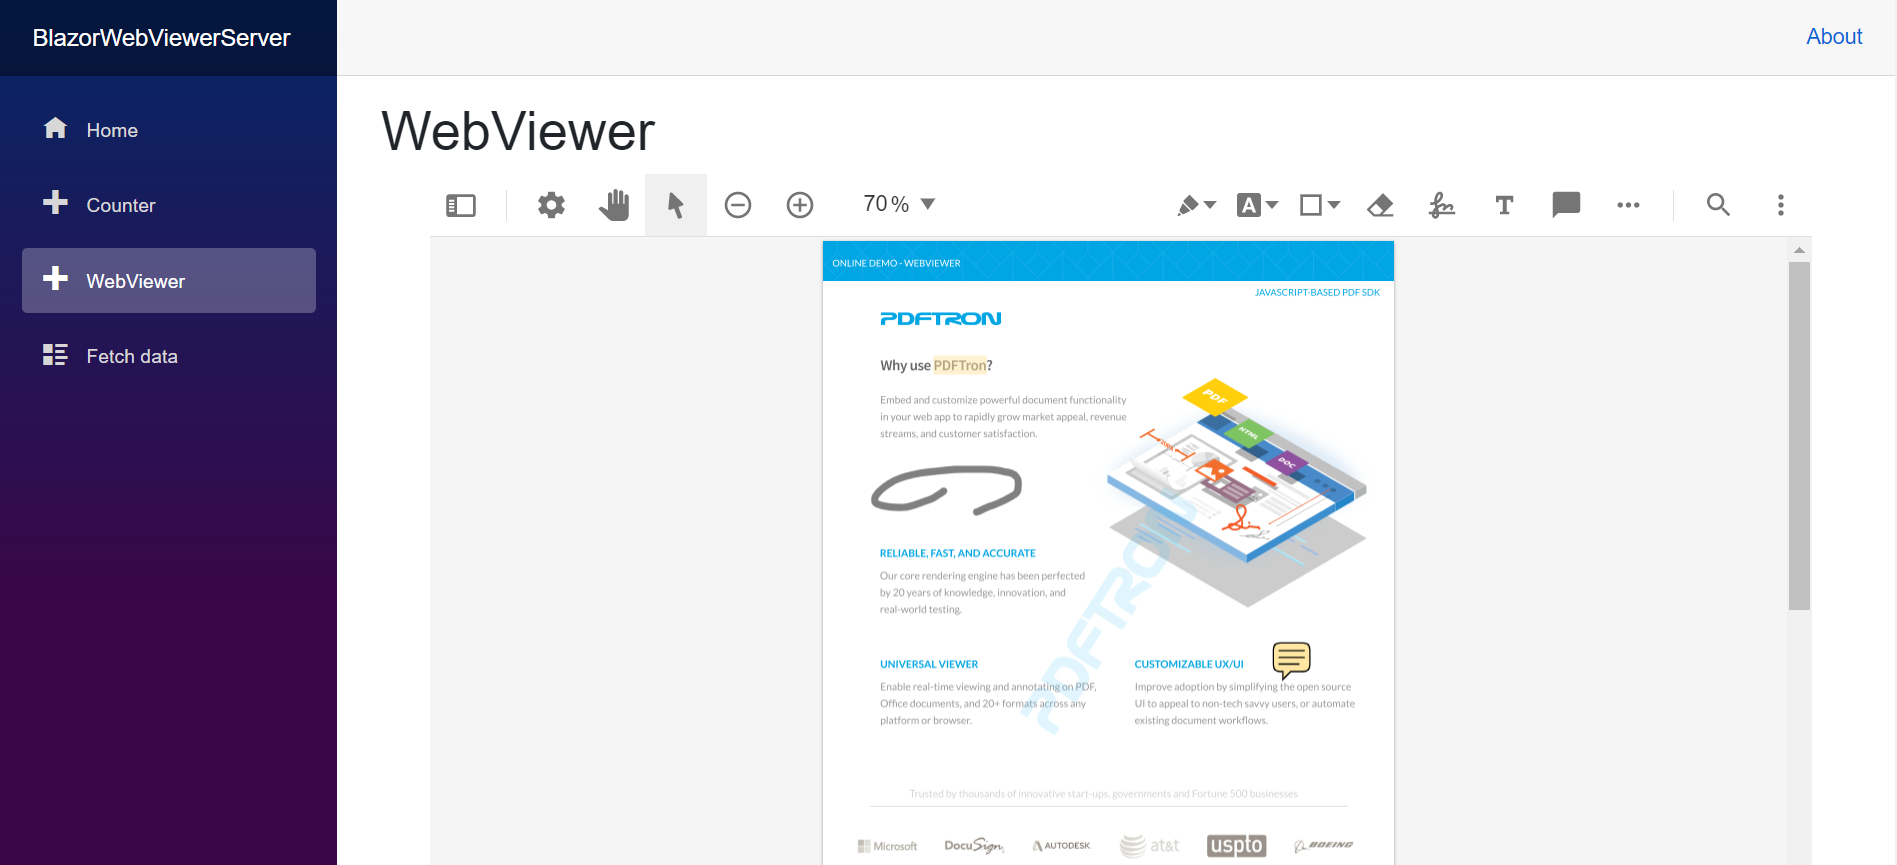 WebViewer integrated in Blazor sample